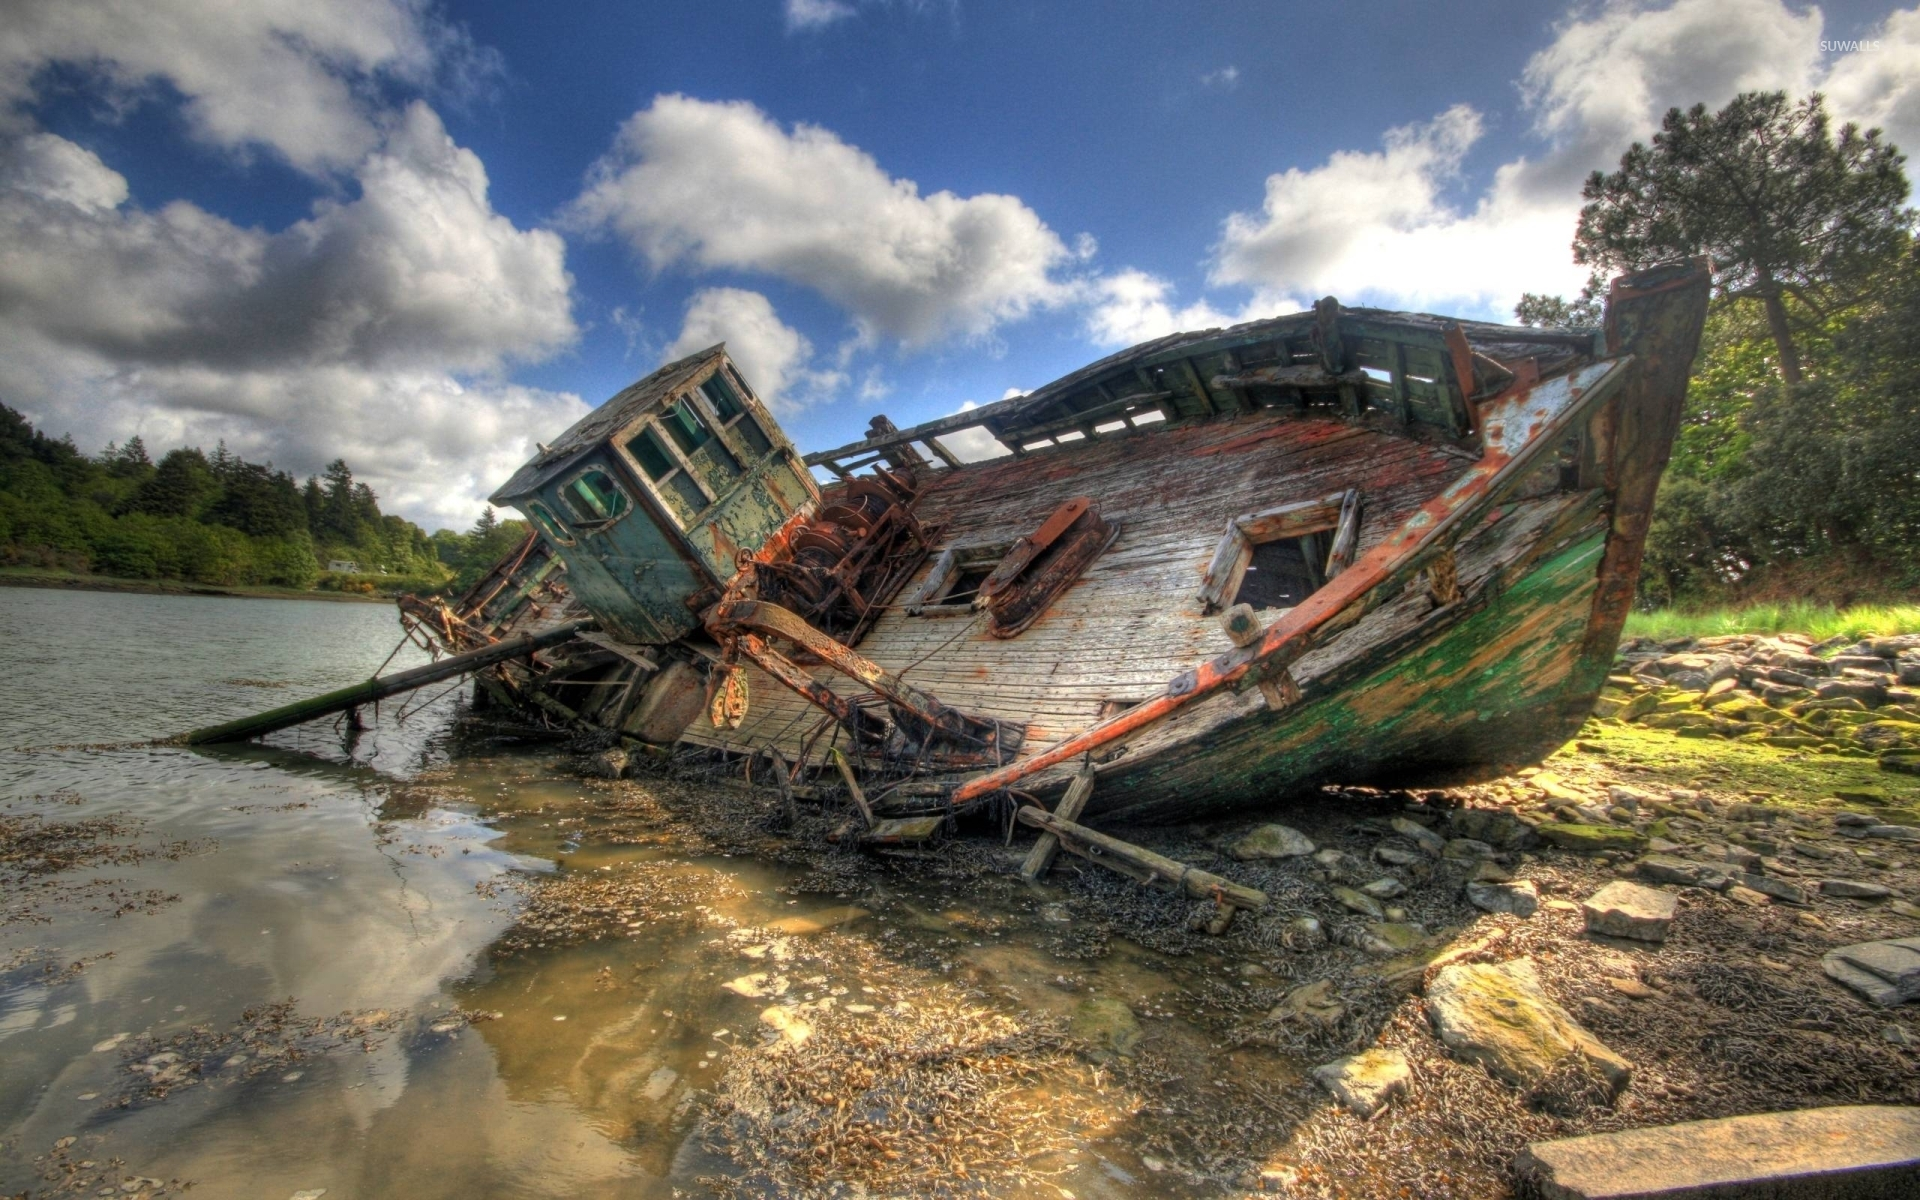 Old fishing boat wallpaper photography wallpapers 41688 for Old fishing boat